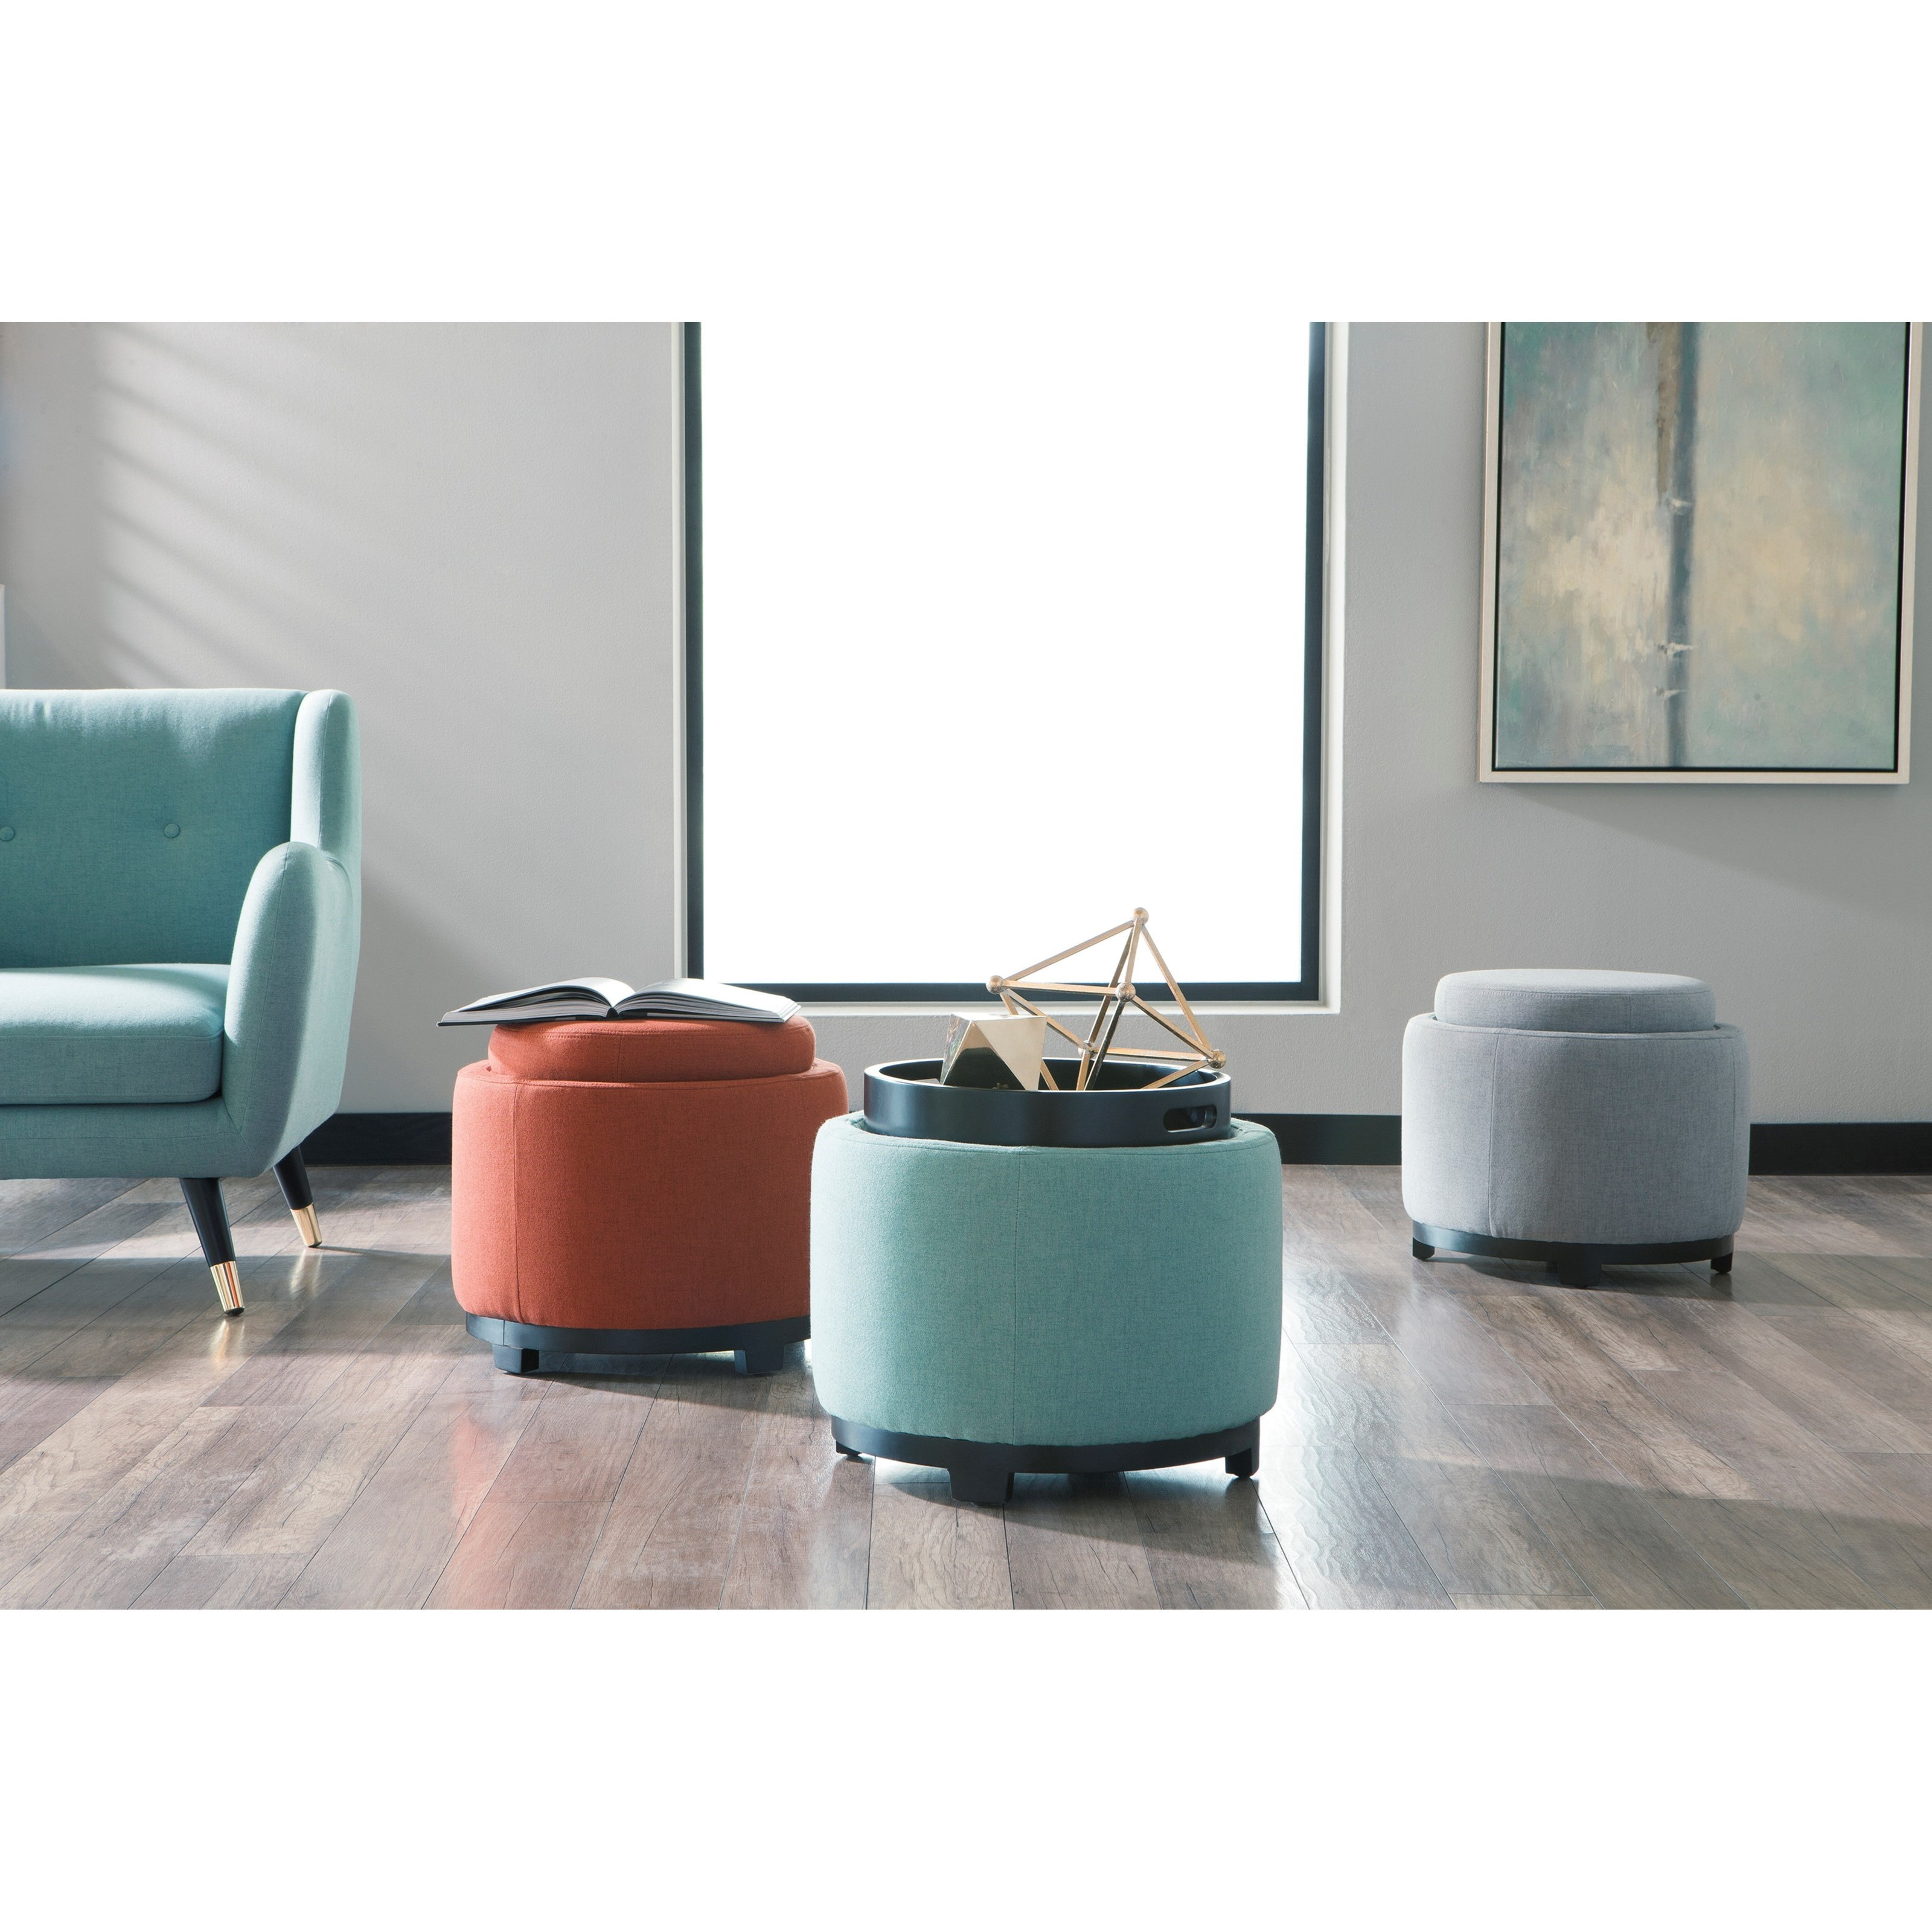 Signature Home Furnishings: Signature Design By Ashley Menga Round Ottoman With